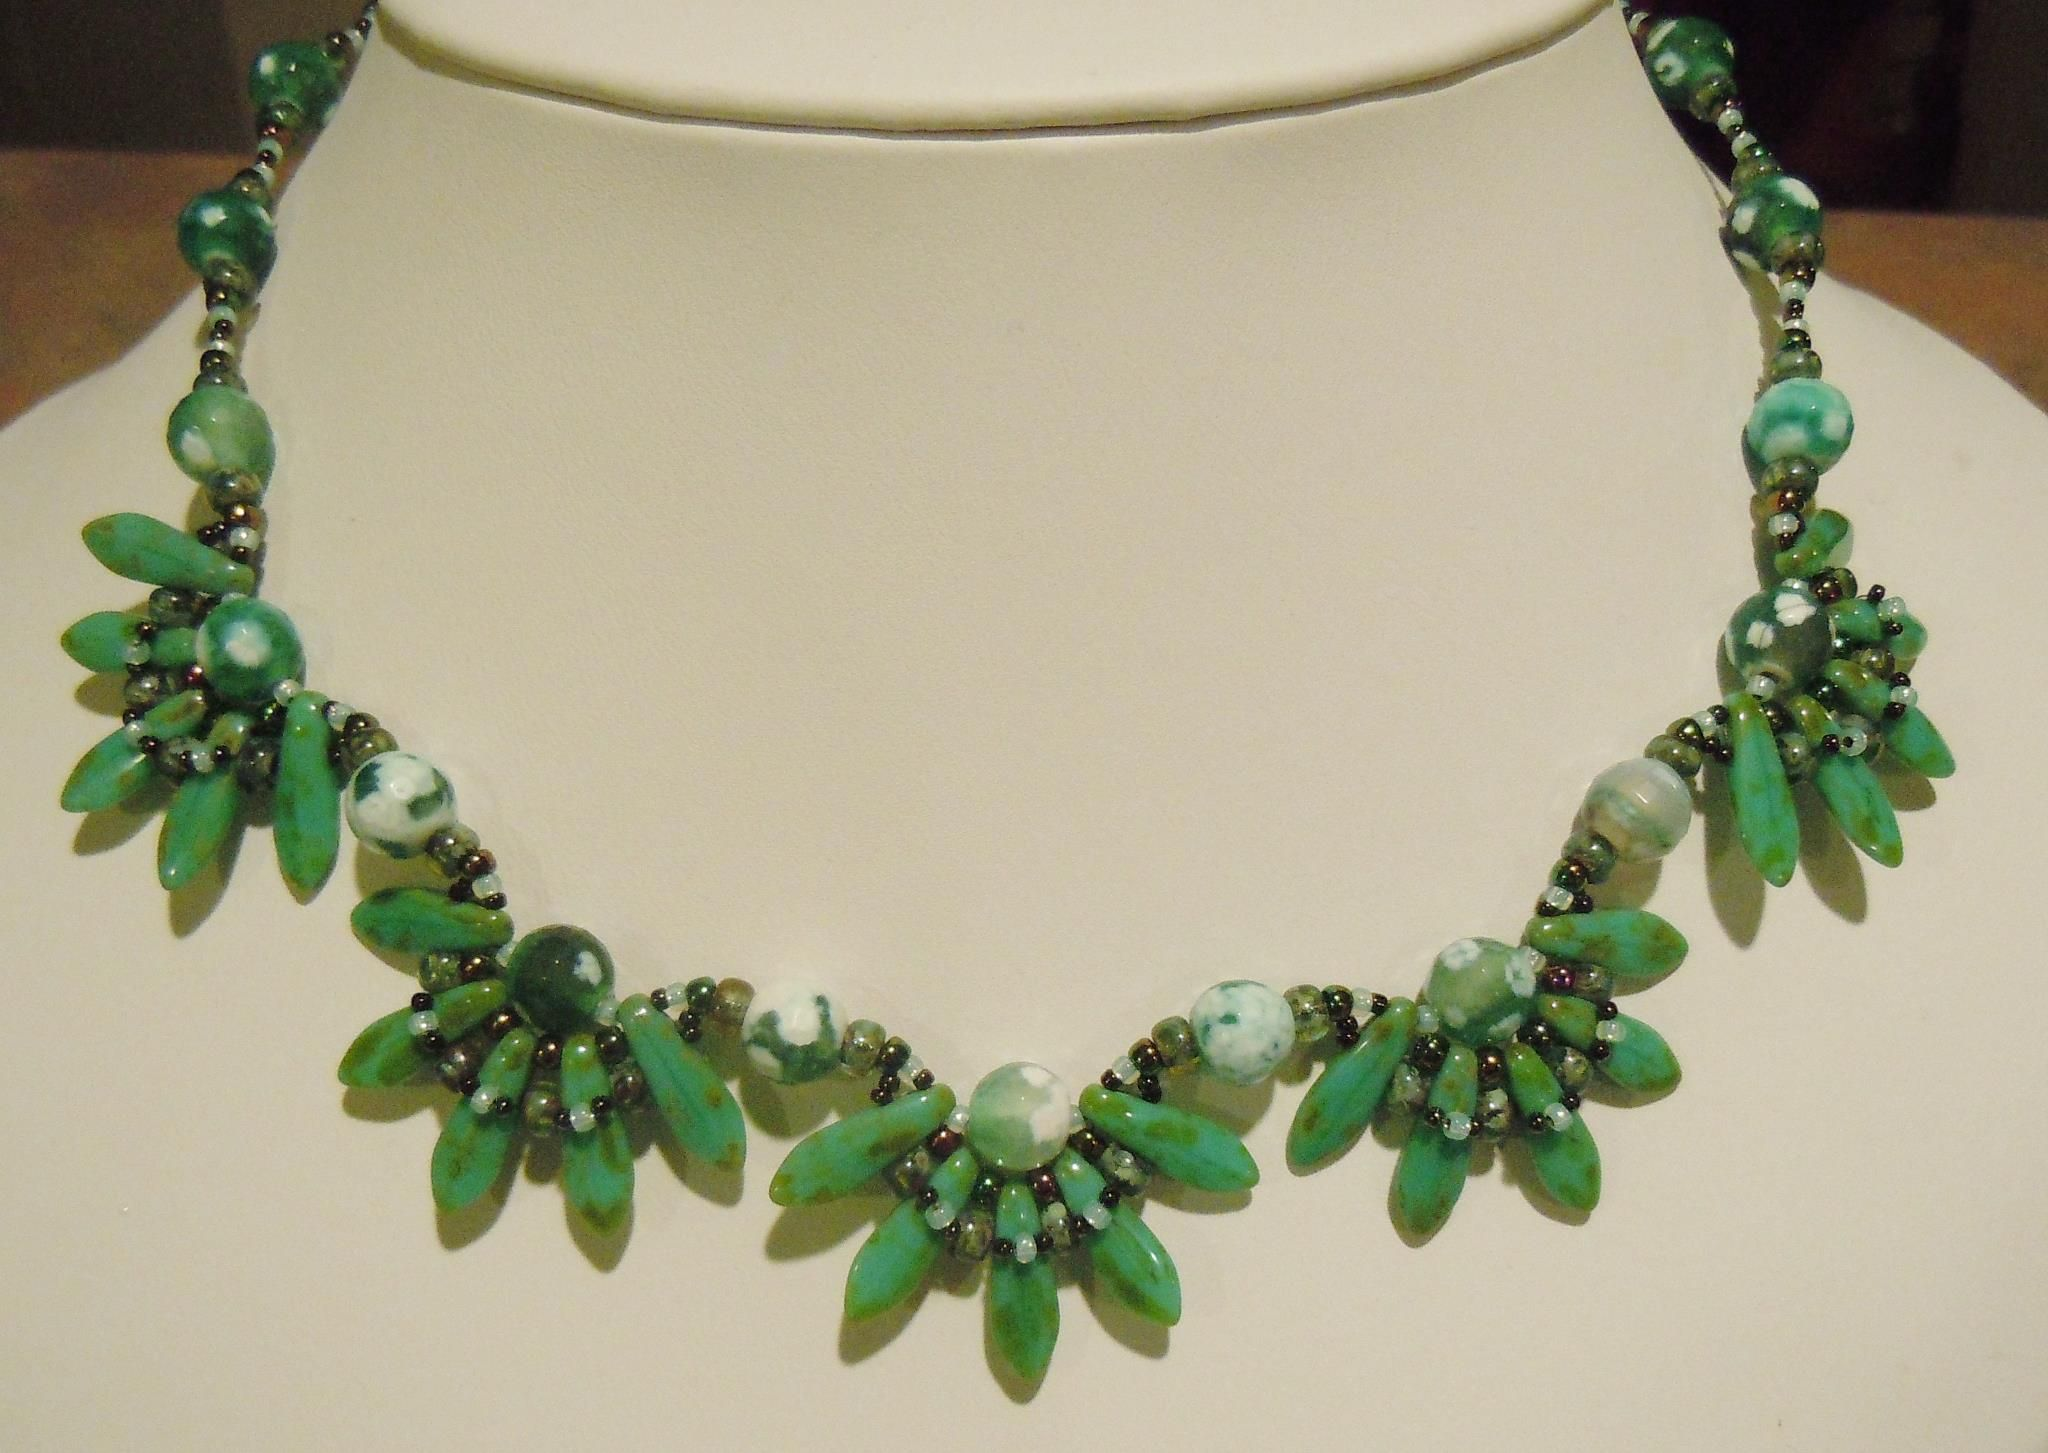 2 hole dagger beads necklace - TrendSetter, Marcia Balonis